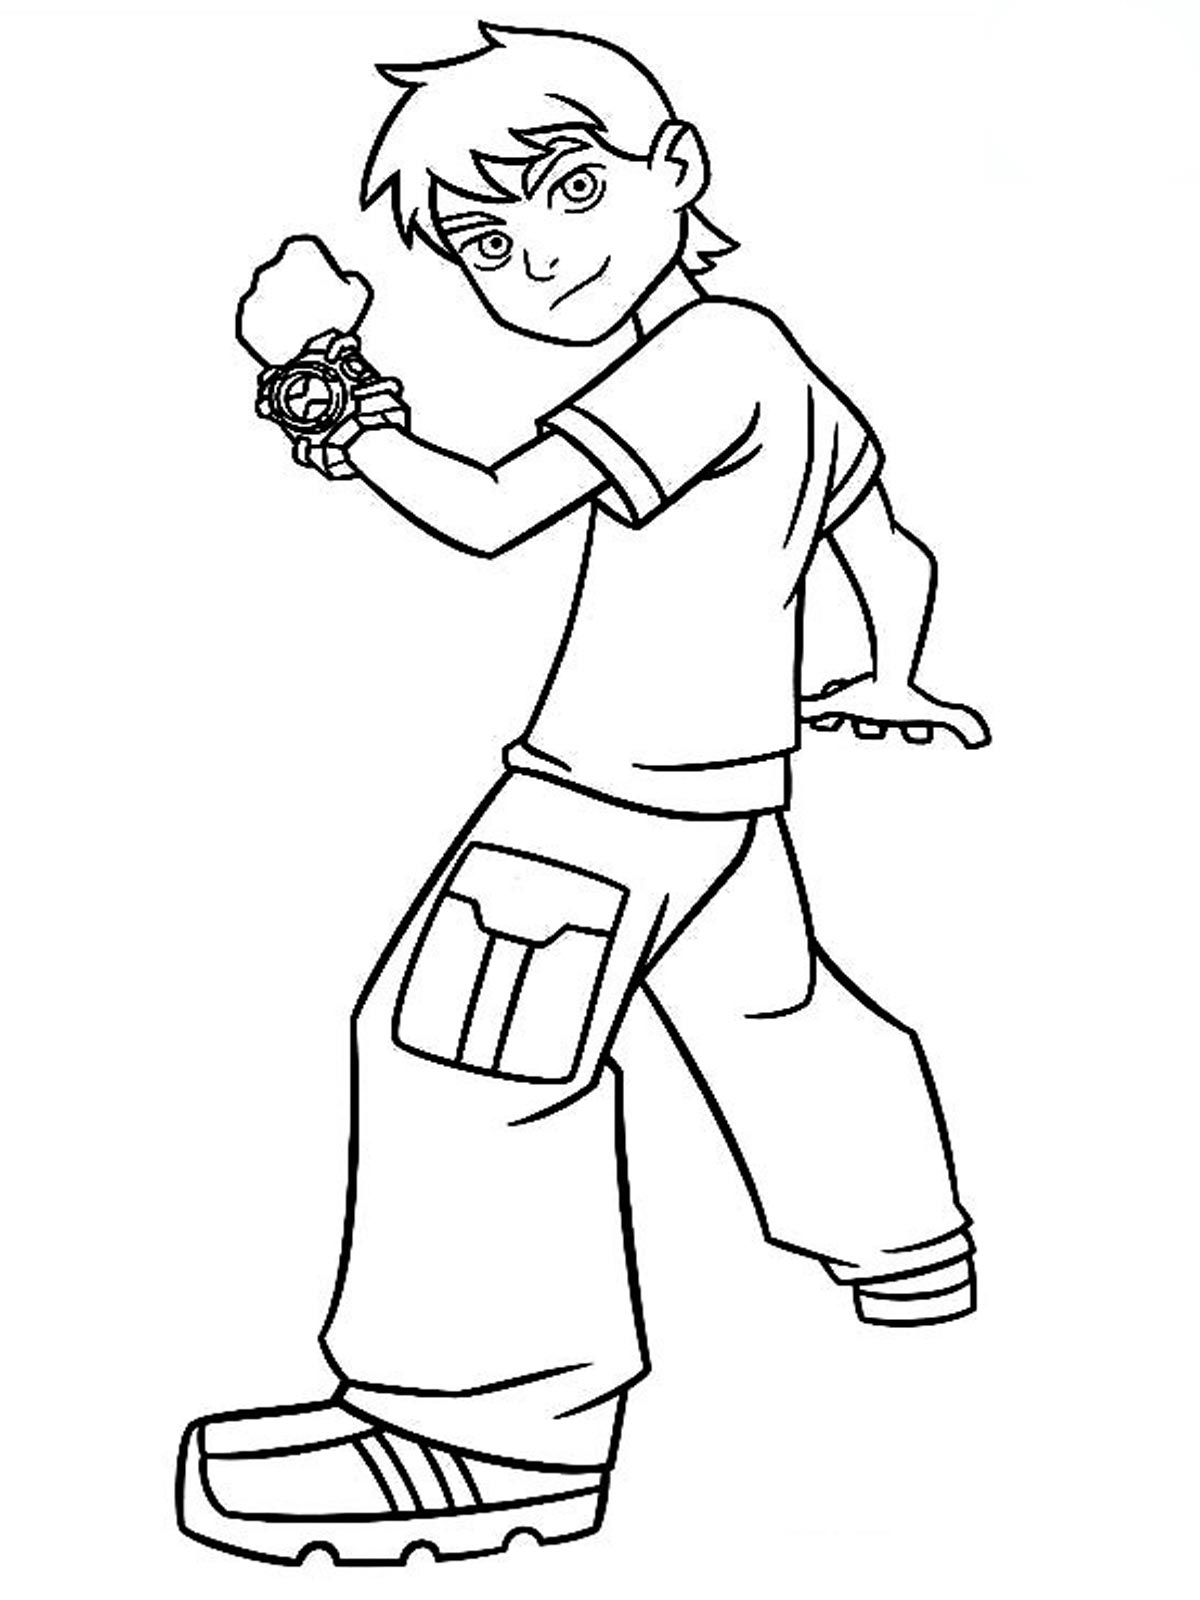 Cartoon Work Coloring Pages Ben 10 Coloring Page